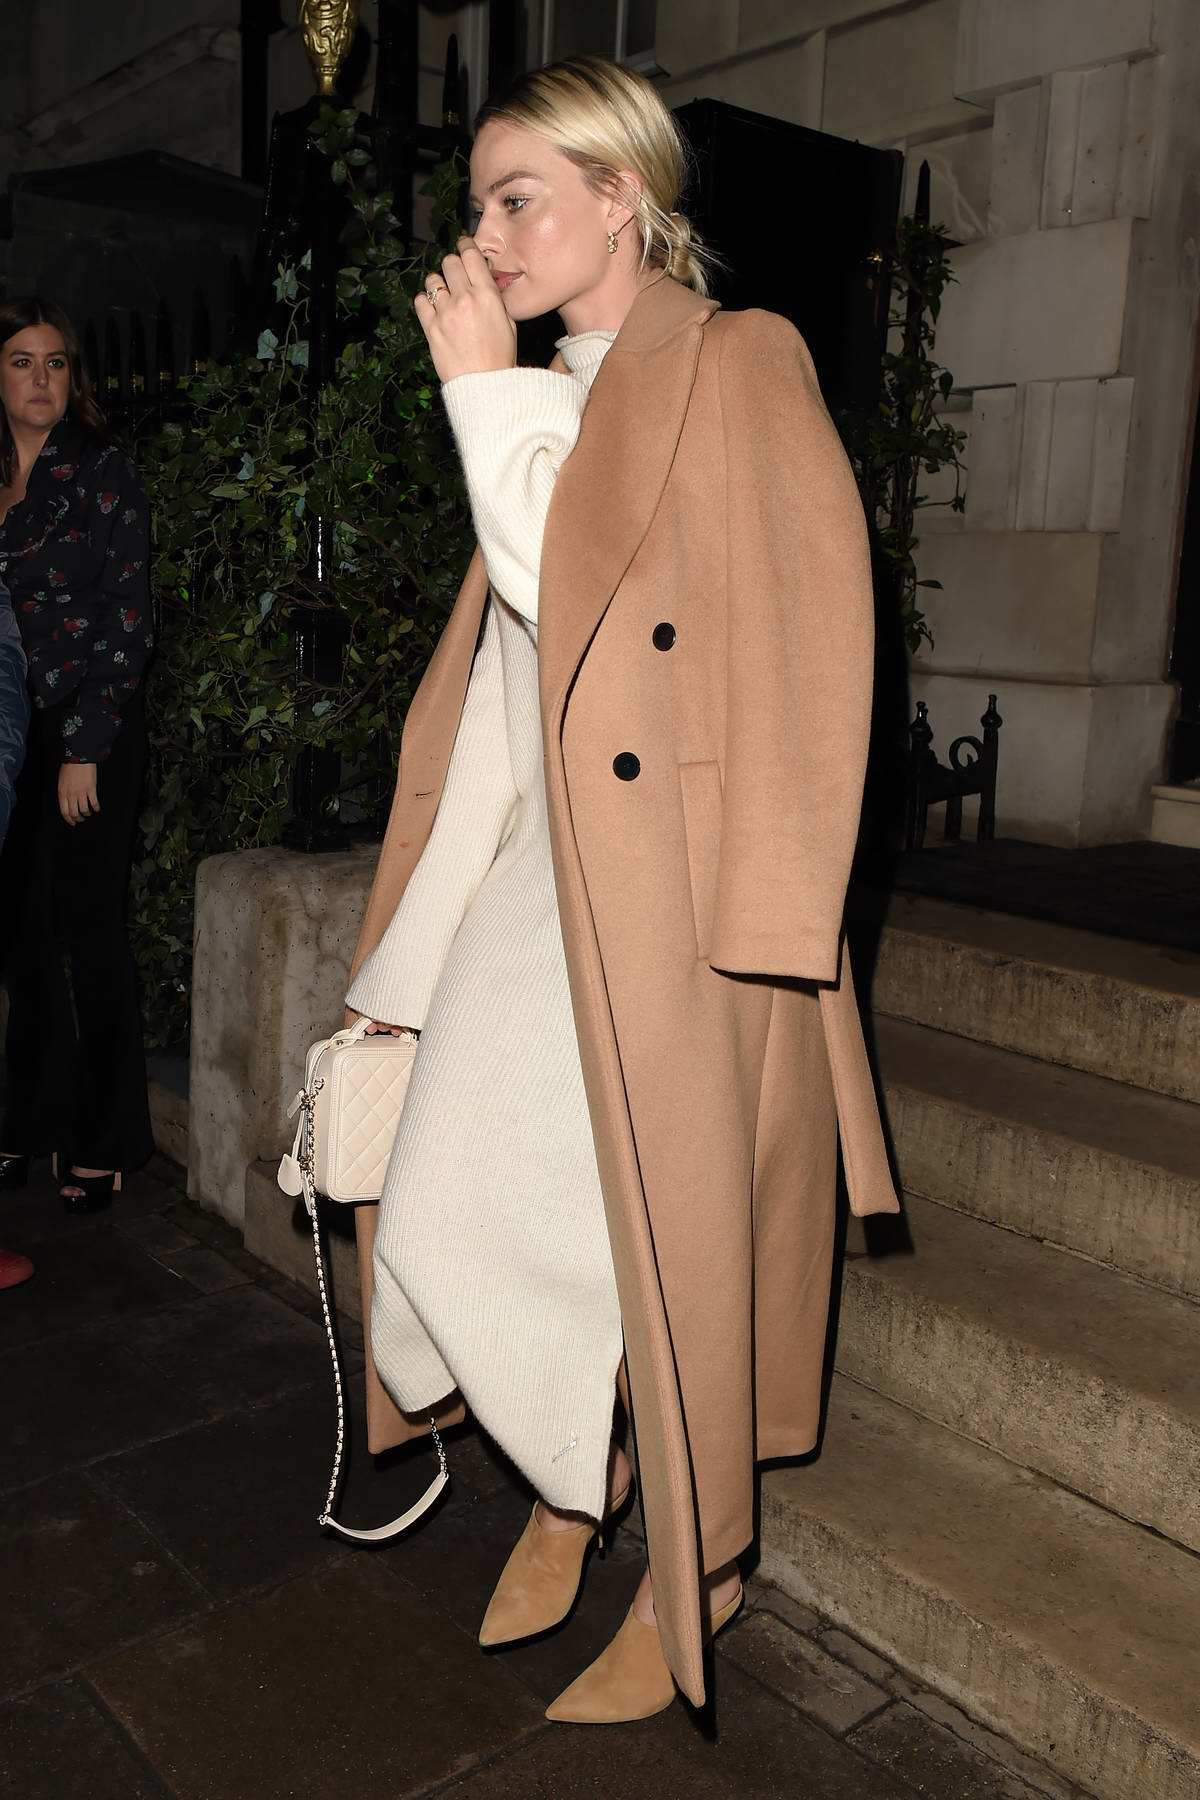 Margot Robbie seen leaving Annabel's Member's Club in Mayfair, London, UK